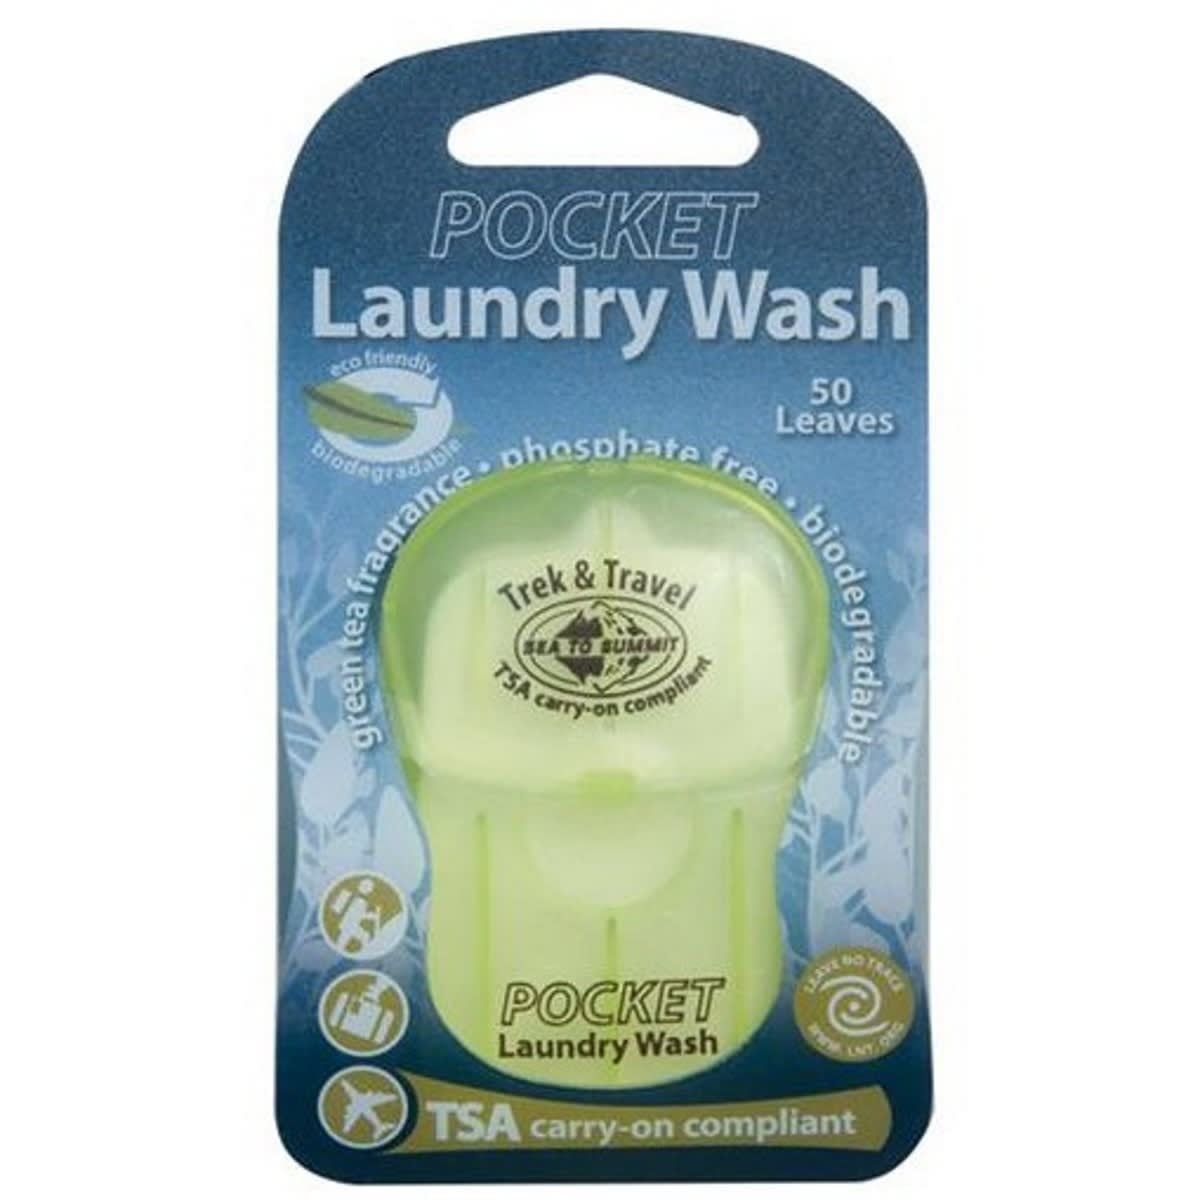 Sea to Summit Trek & Travel Pocket Laundry Wash